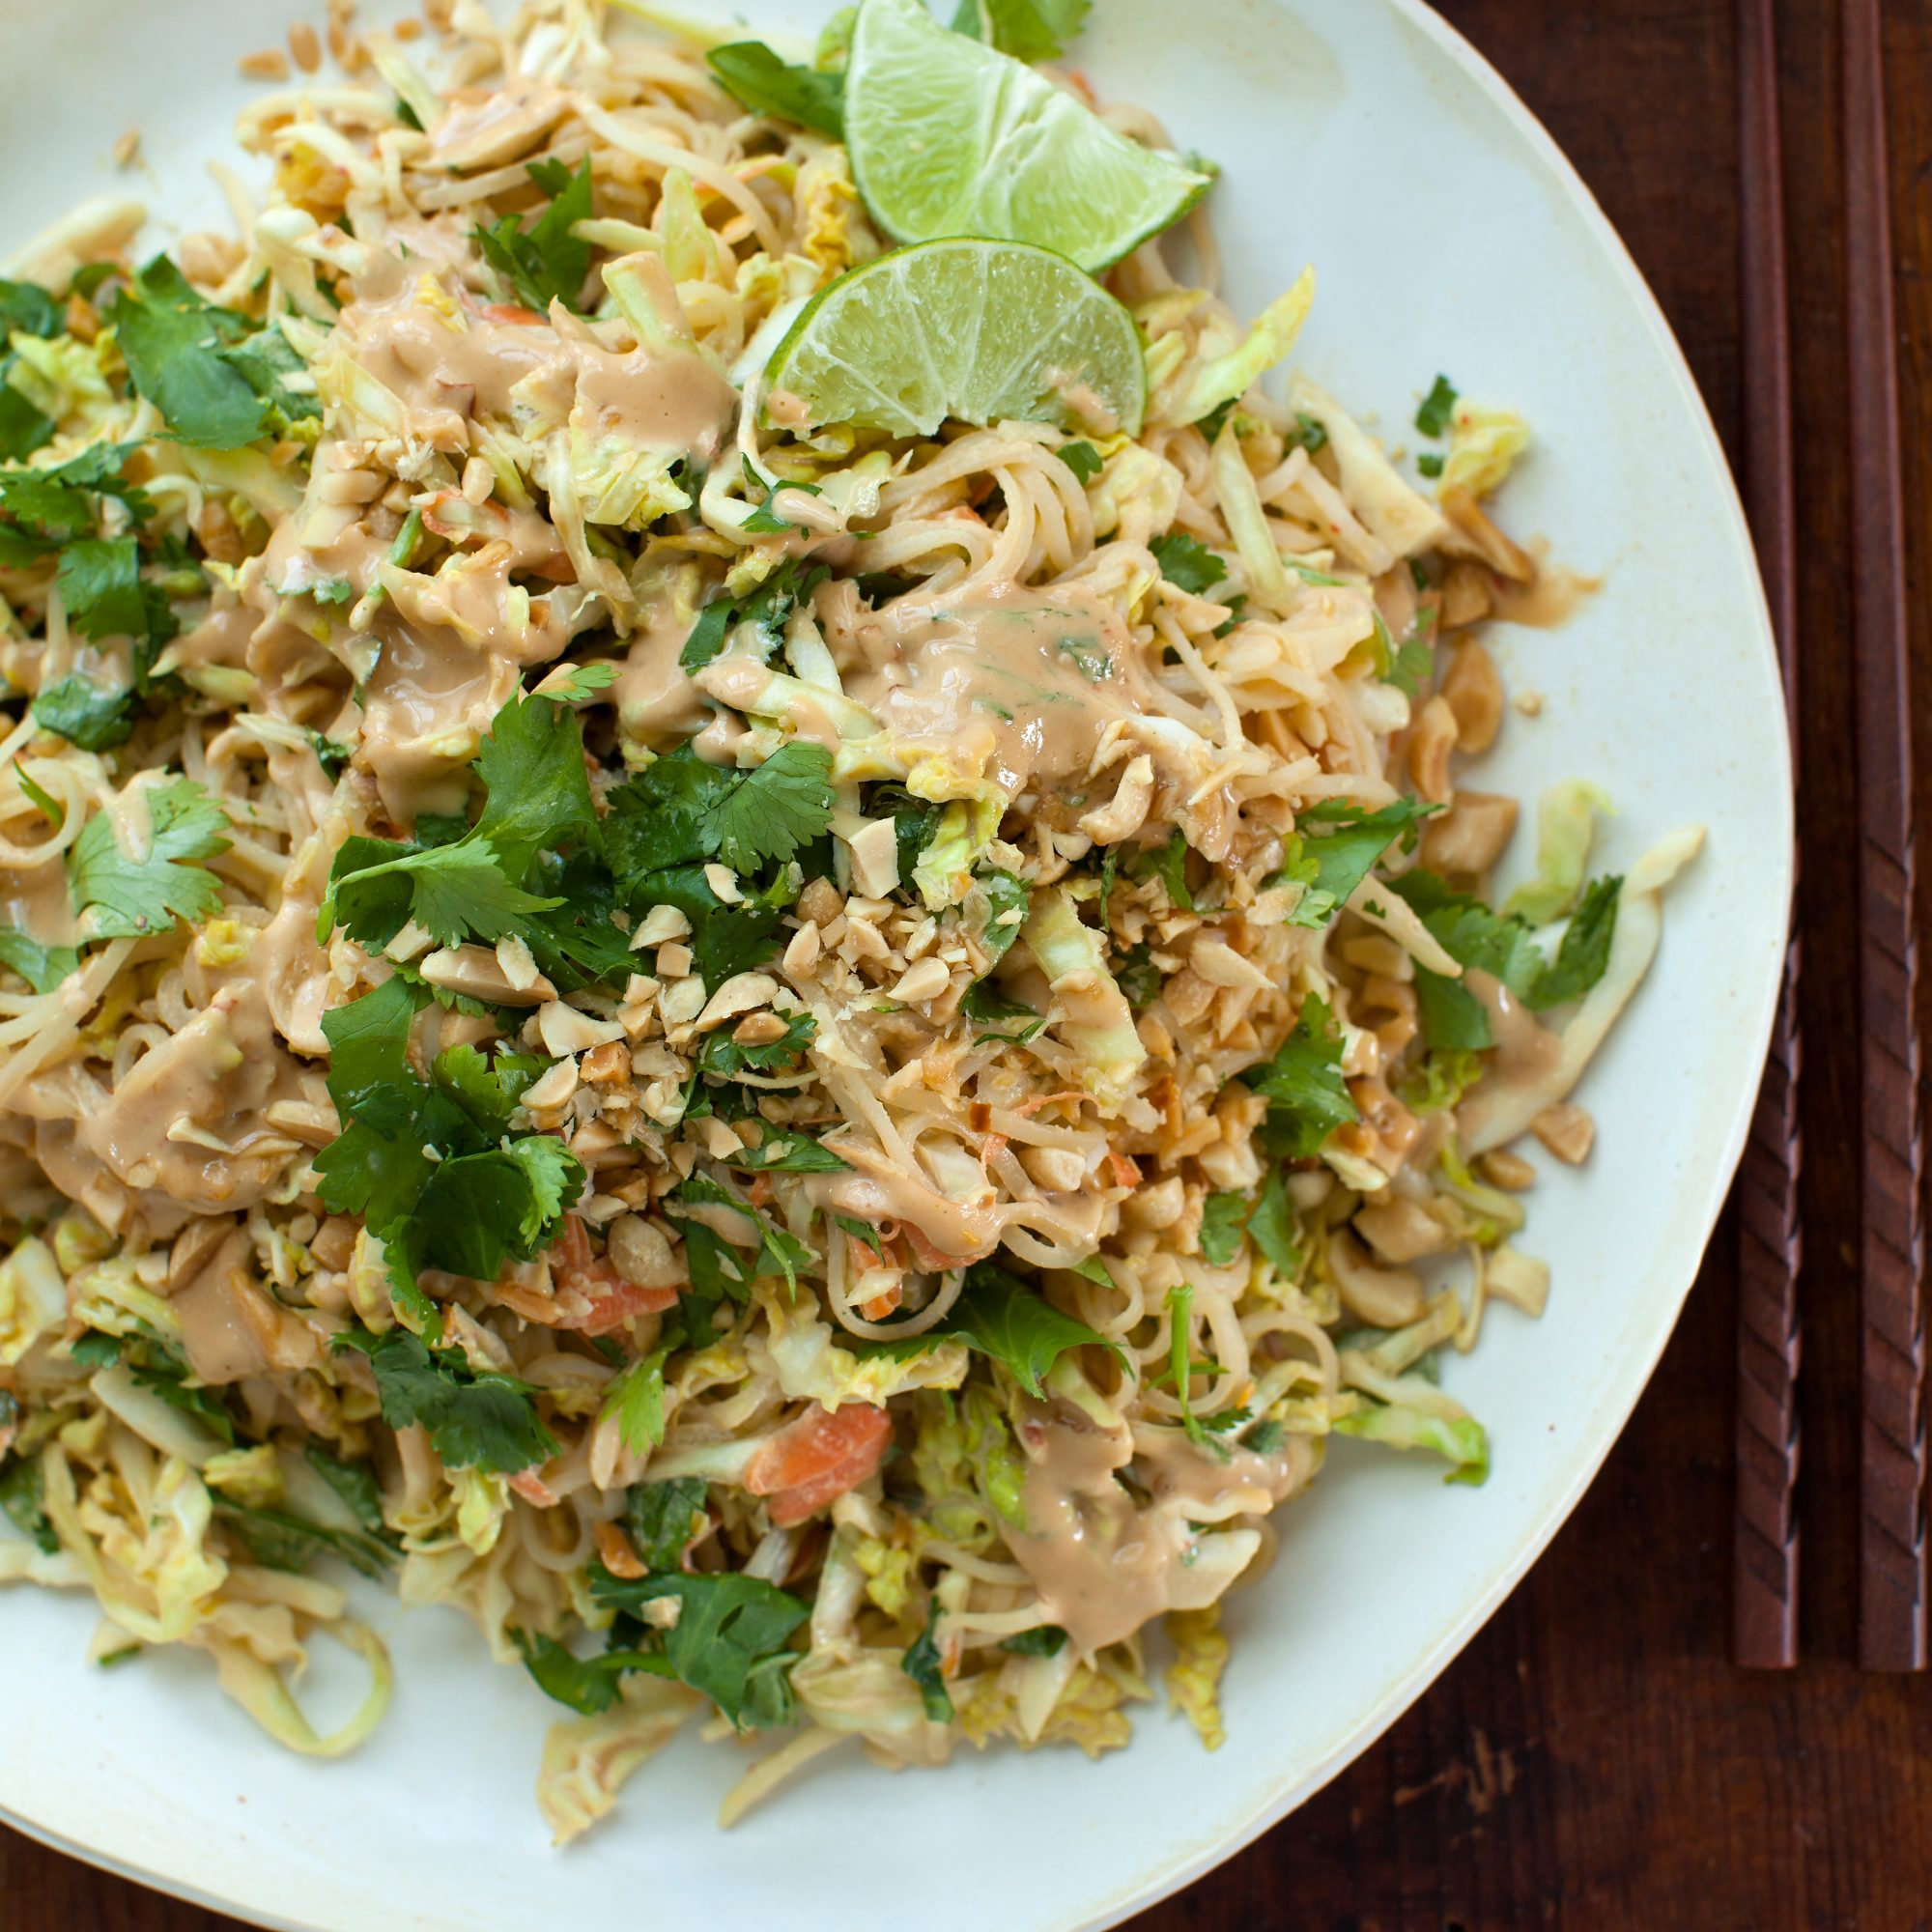 Chilled Rice Noodle and Cabbage Salad with Spicy Peanut Dressing